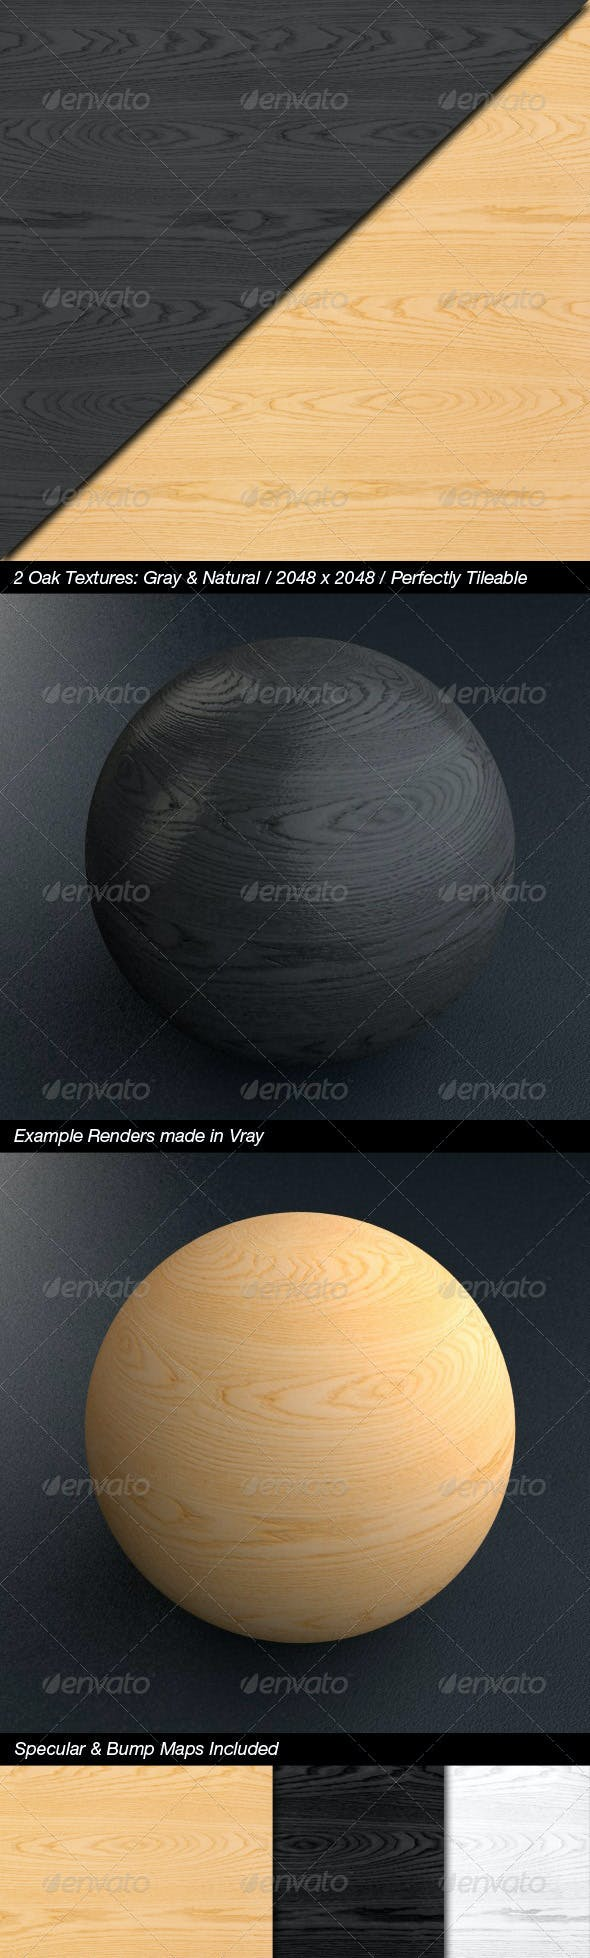 2 High Quality Oak Textures with Bump & Specular - 3DOcean Item for Sale